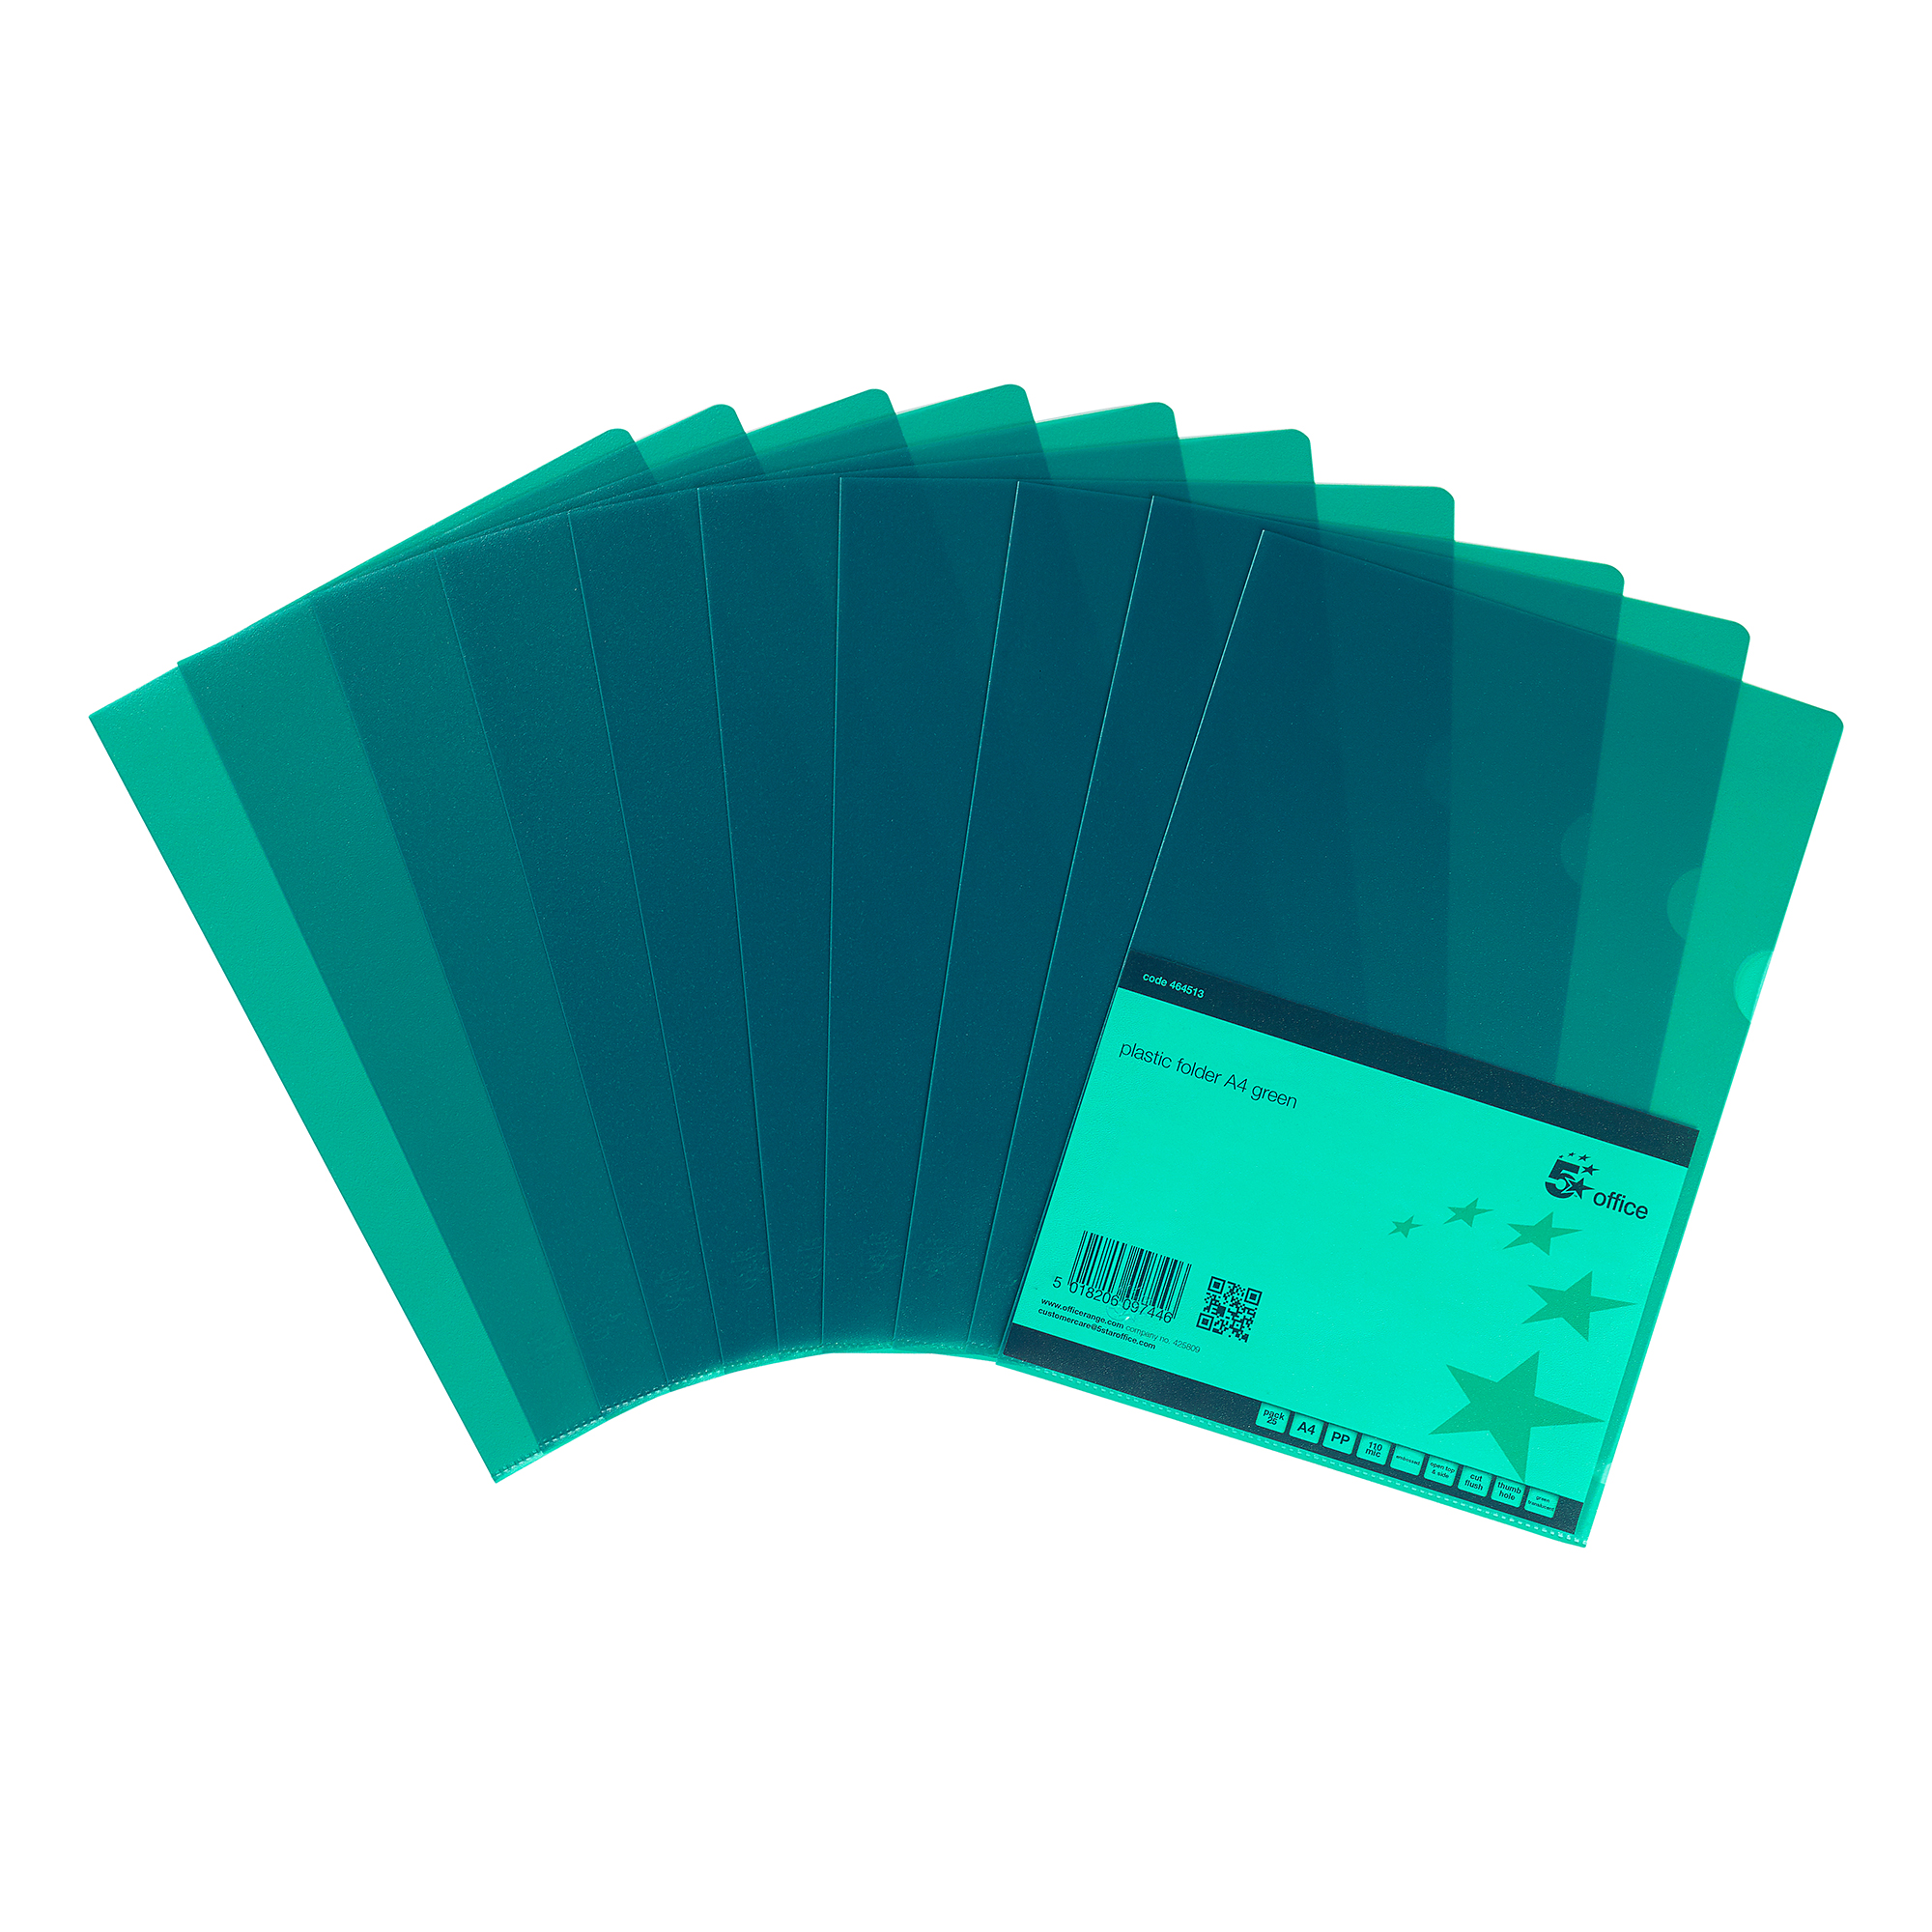 Image for 5 Star Office Folder Cut Flush Polypropylene Copy-safe Translucent 120 Micron A4 Green [Pack 25]